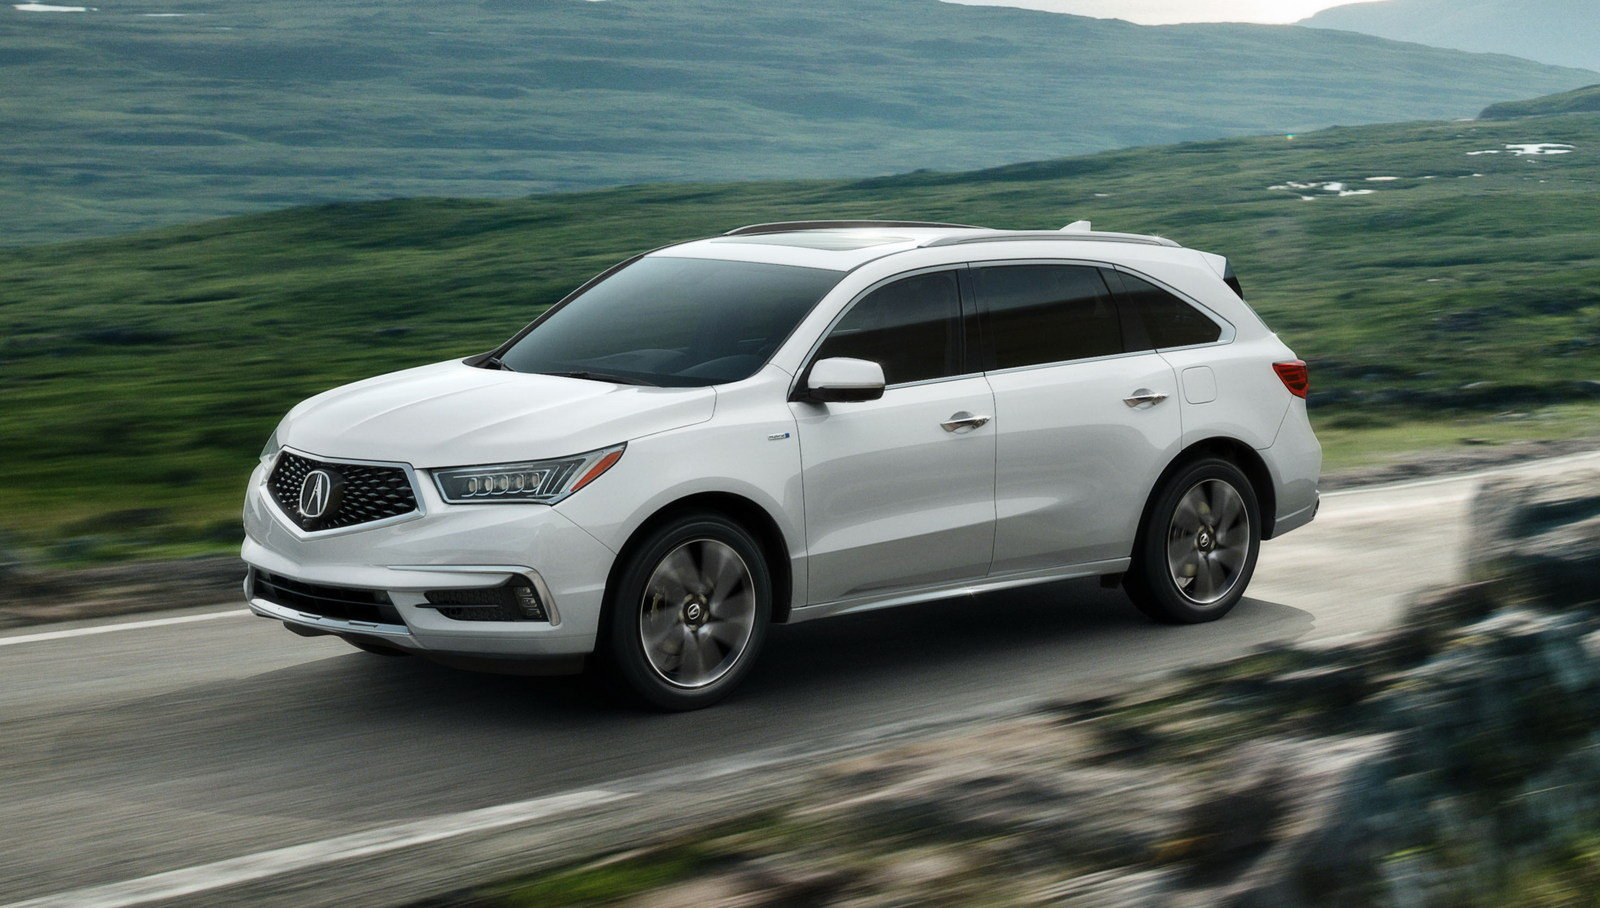 2017 acura mdx picture 670503 car review top speed. Black Bedroom Furniture Sets. Home Design Ideas